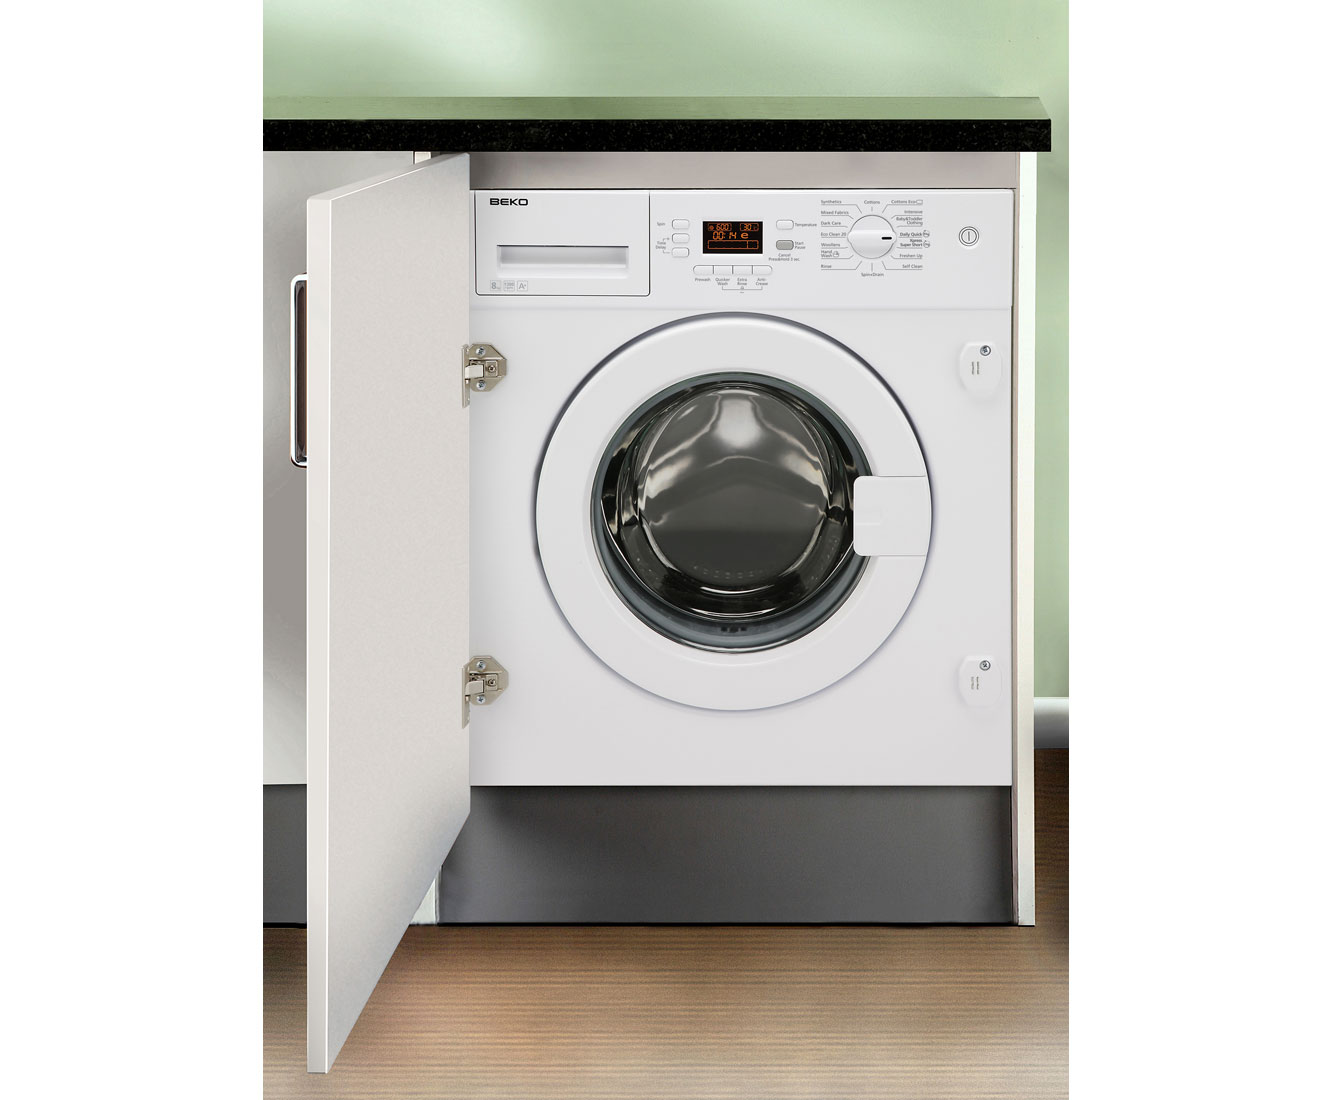 Beko WMI81341 Integrated 8Kg Washing Machine with 1300 rpm